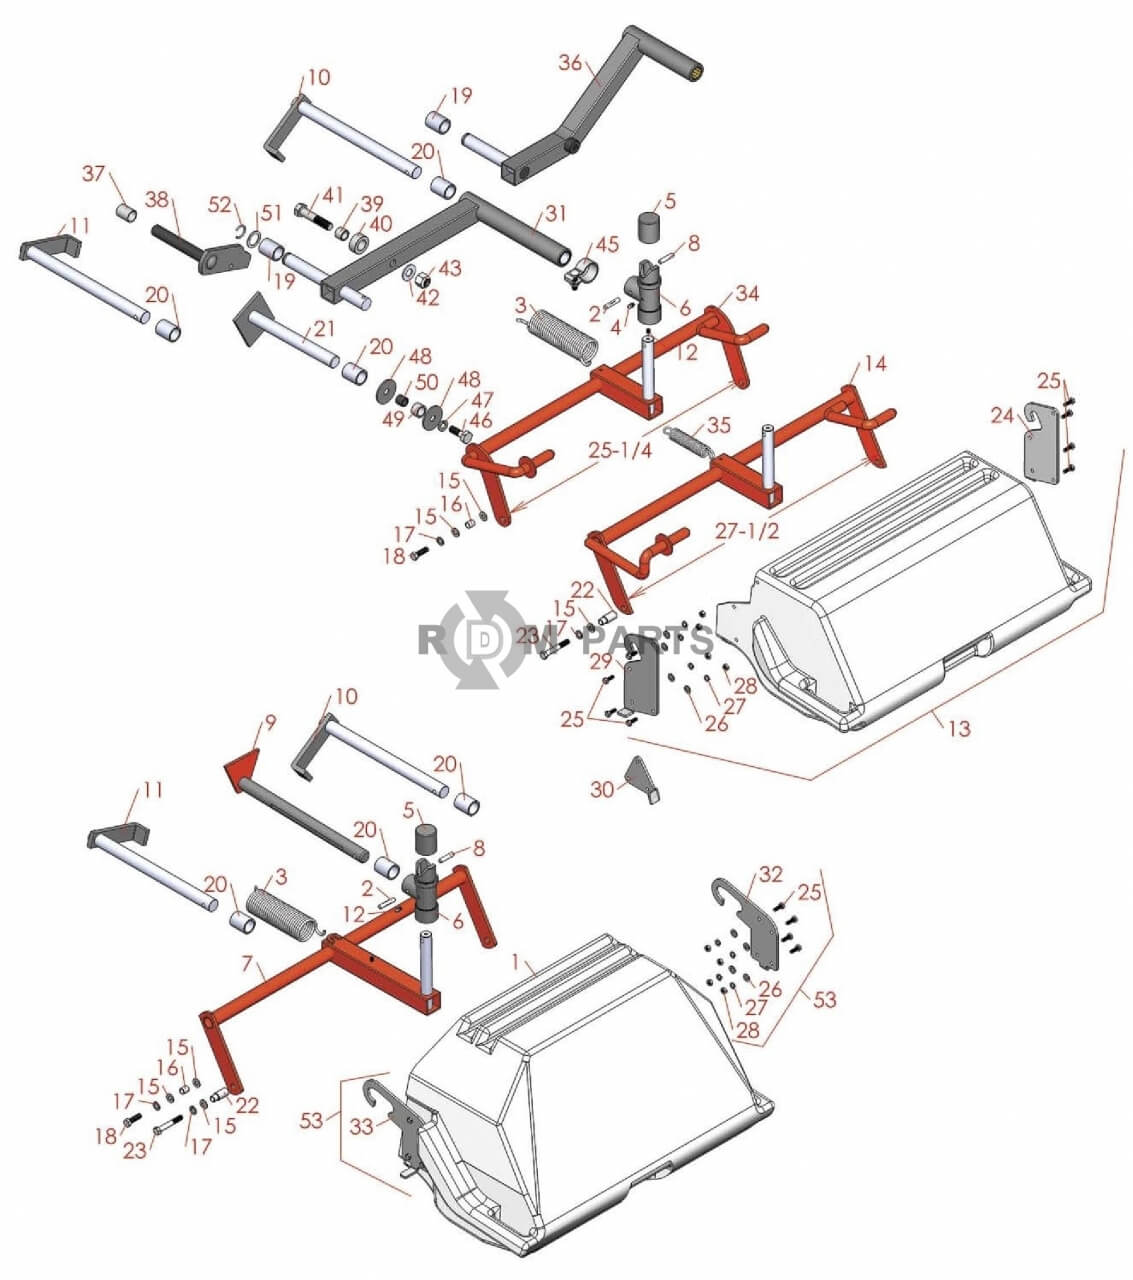 d5d82a5f 8534 41a9 8866 37b9a5723b7c?size\\\\\\\\\\\\\\\=medium trail wagon wiring diagram electrical diagrams, engine diagrams  at panicattacktreatment.co